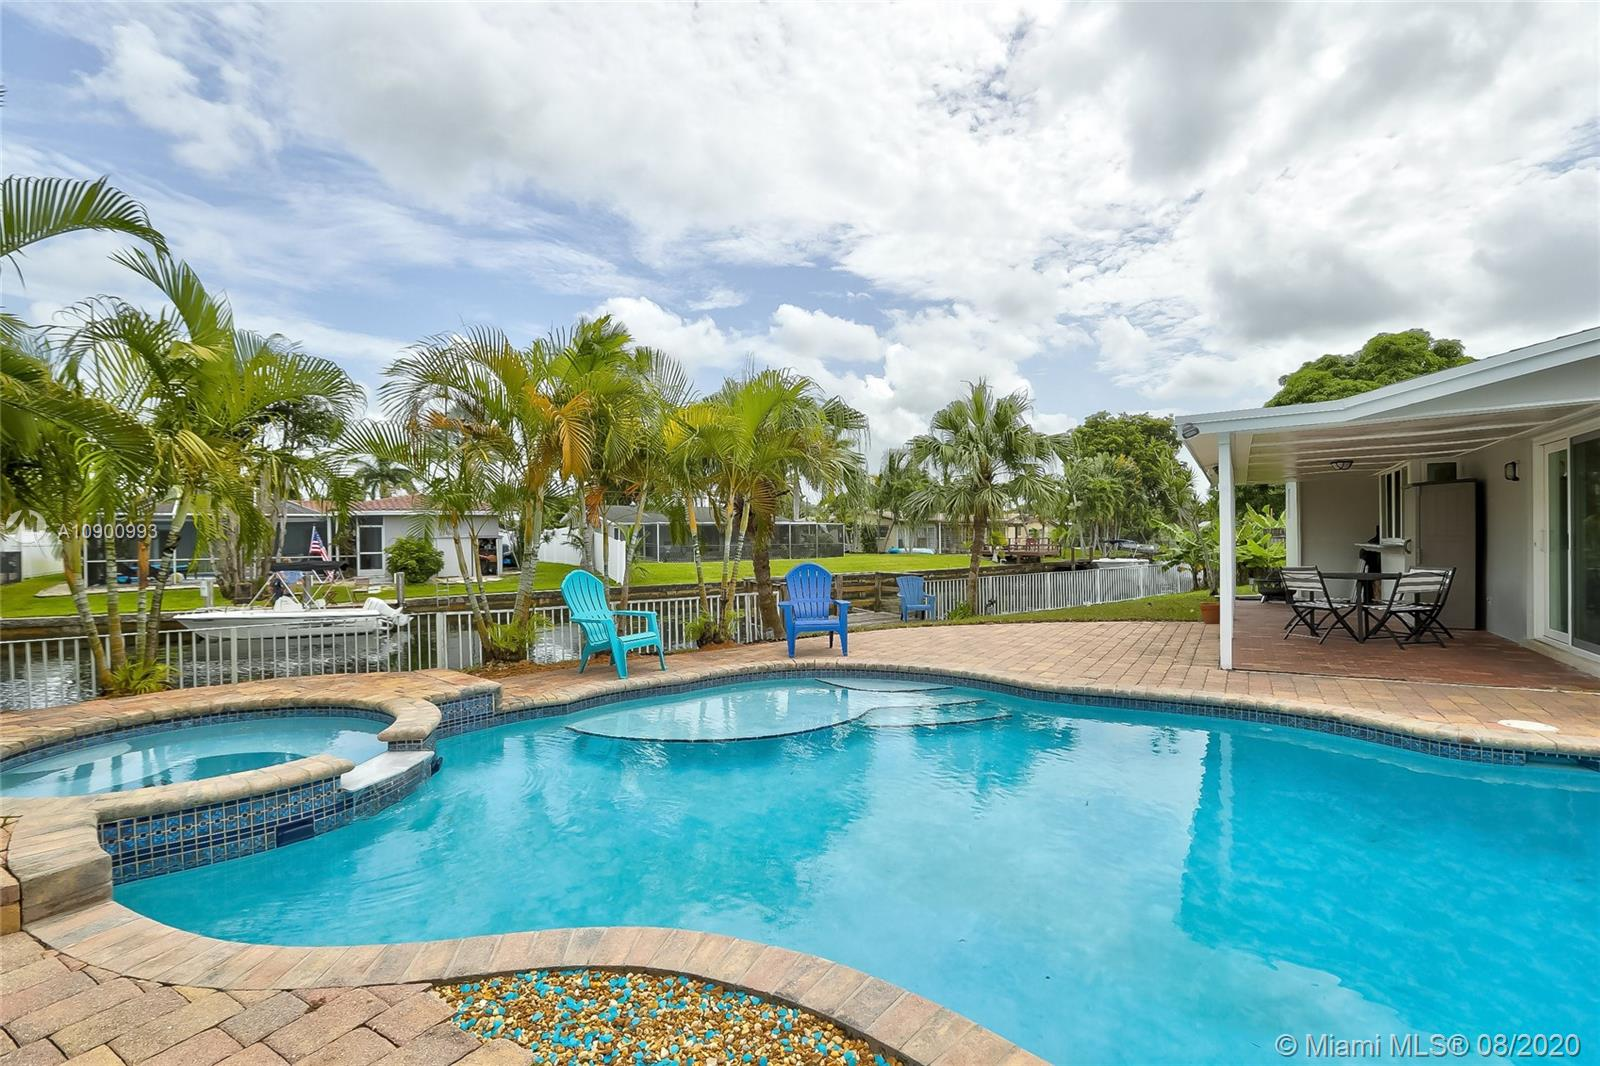 The perfect Florida Oasis awaits! Tucked away at the end of a cul-de-sac, this home offers 100 feet of water frontage with Ocean Access.  Brand new, complete impact windows with transferable warranty, fresh paint inside and out, all new pool equipment and pool heater, new appliance package, updated bathrooms, as well as a newer A/C.  Expansive outdoor space with ambient lighting in addition to the free-form pool and hot tub make this the perfect home for boaters, snowbirds, or investors looking for a vacation rental.  NO HOA so you can store your boat or RV on premises.  Conveniently located with easy access to I-95, beaches and shopping.